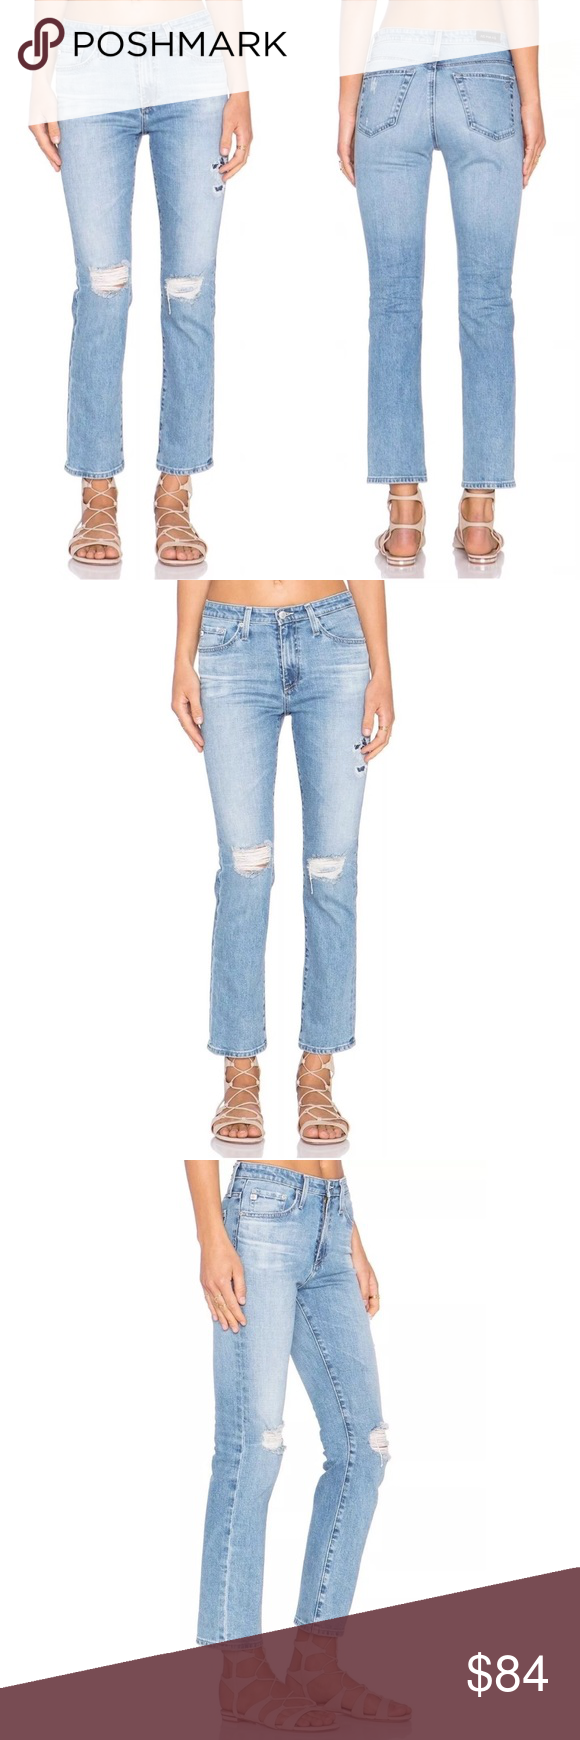 00b60f3df8b New ALEXA CHUNG for AG Sabine Size 30 Jeans 157144 New with tags. ALEXA  CHUNG